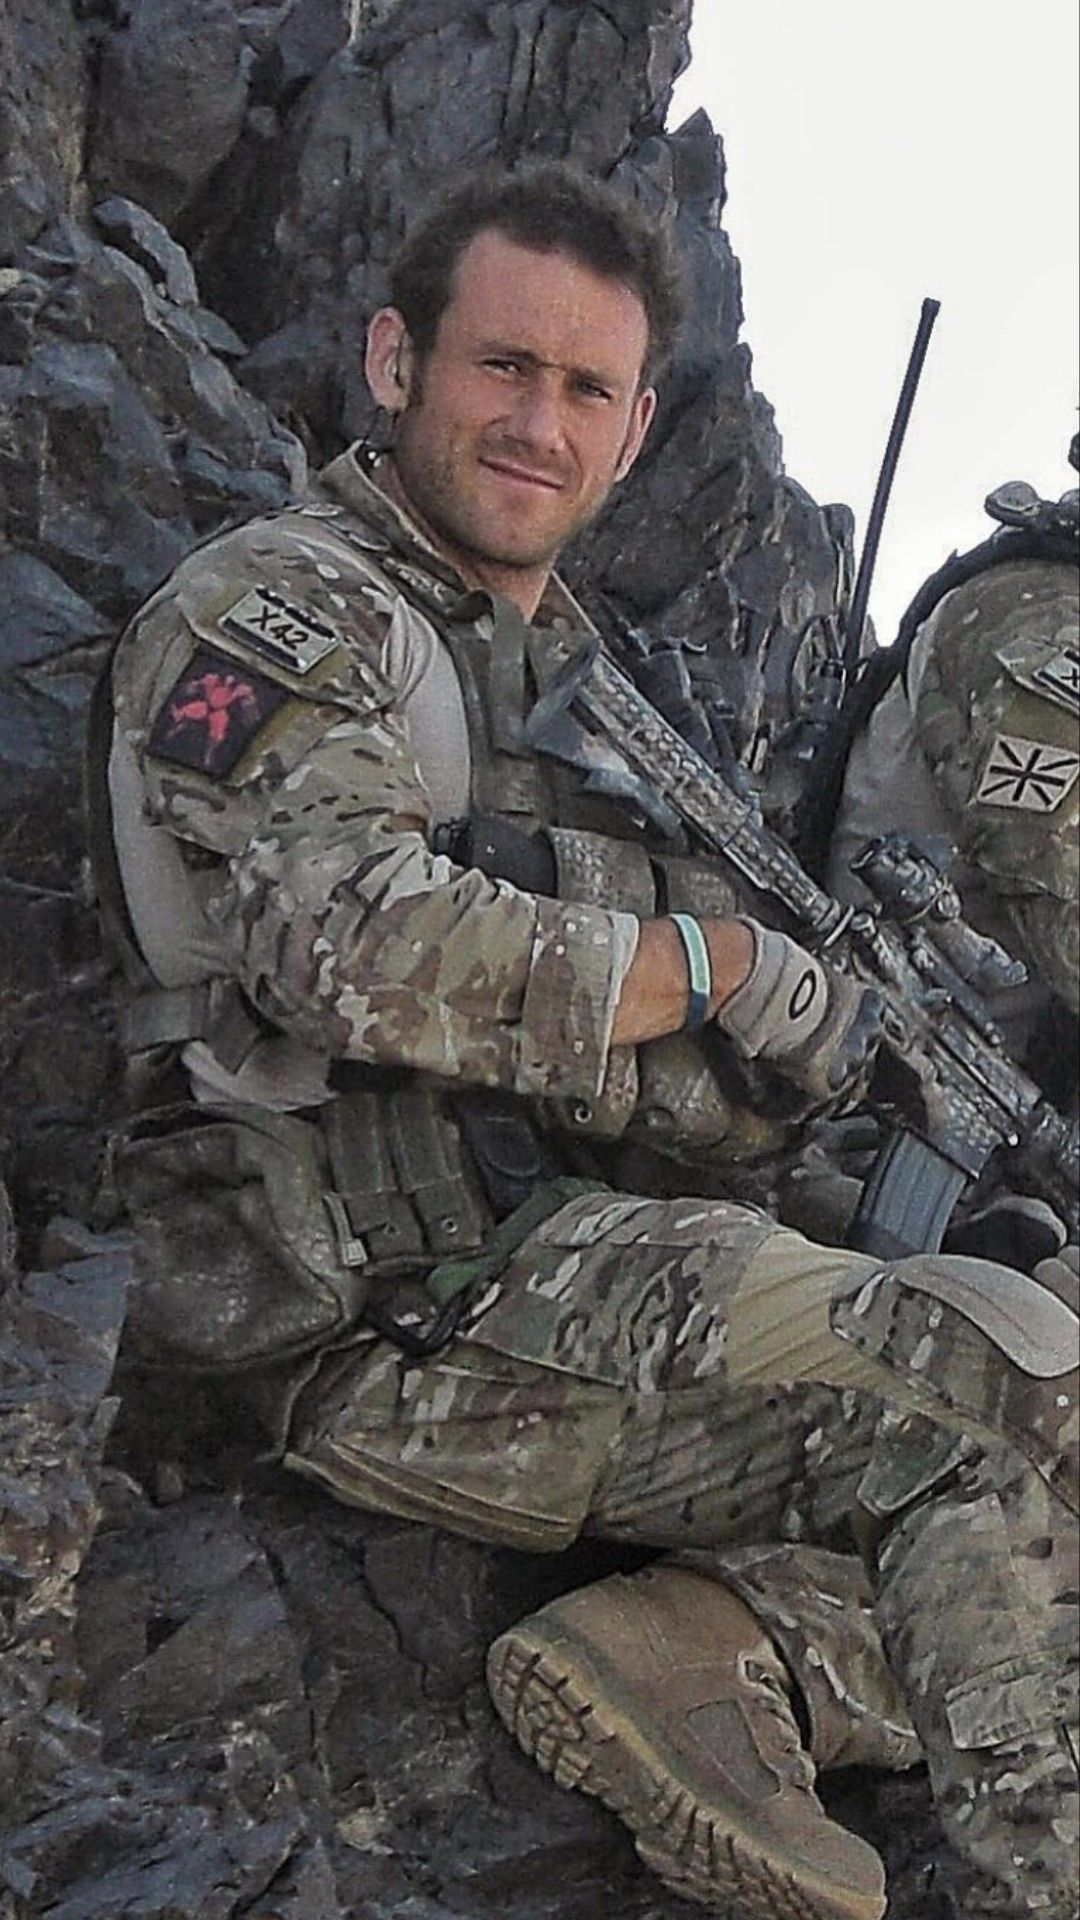 Picture from google images) Jason Fox of the British SBS in